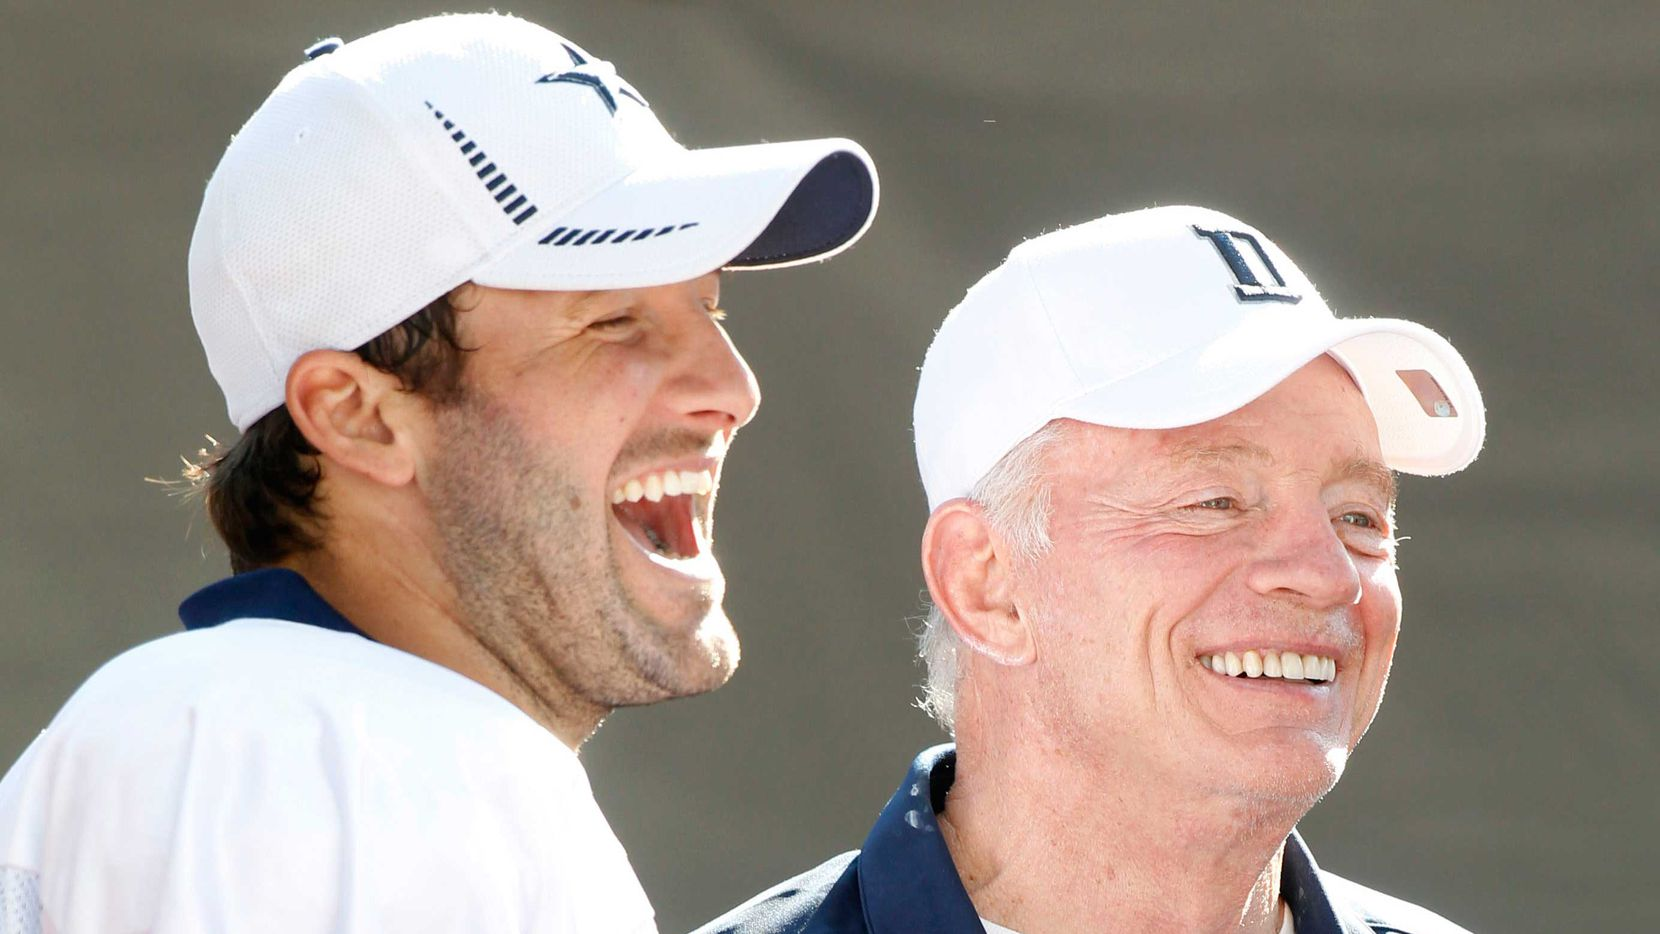 Dallas Cowboys quarterback Tony Romo (9) and owner Jerry Jones laugh after their afternoon practice at training camp in Oxnard, CA, on Wednesday, August 15, 2012.